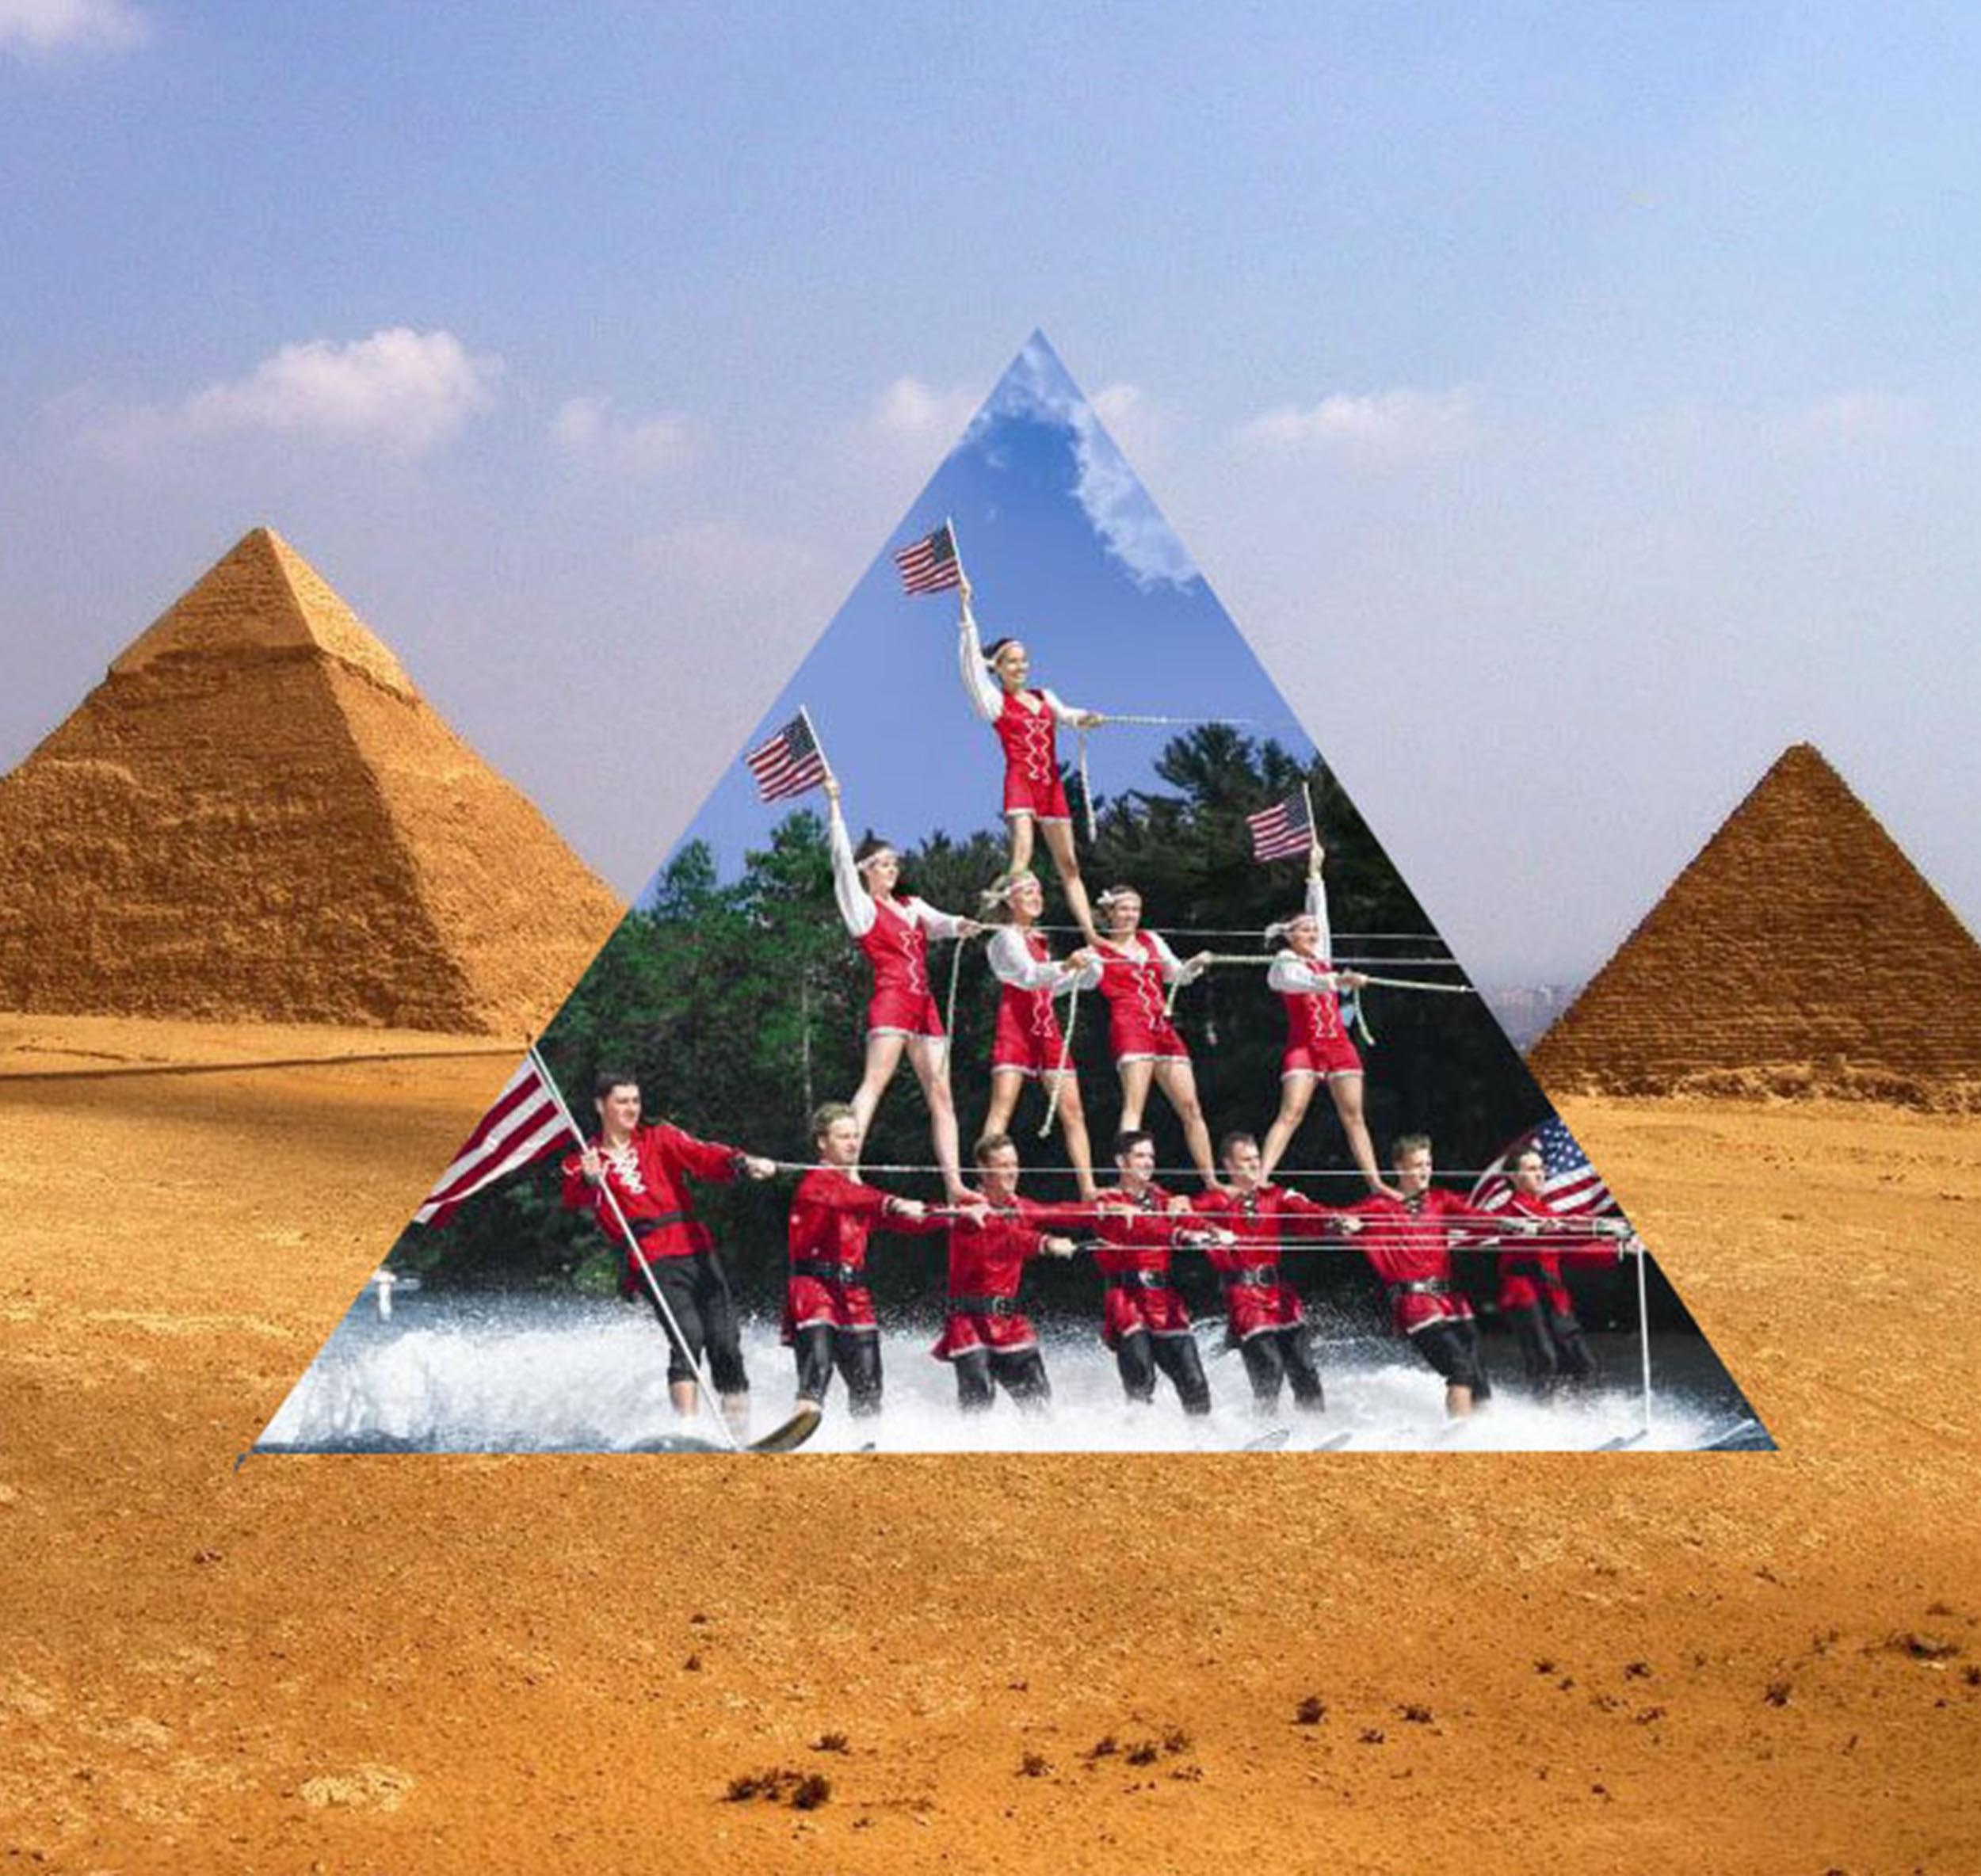 A collage of the desert with pyramids, the center of which has is a photograph of several people waterskiing in a pyramid formation.